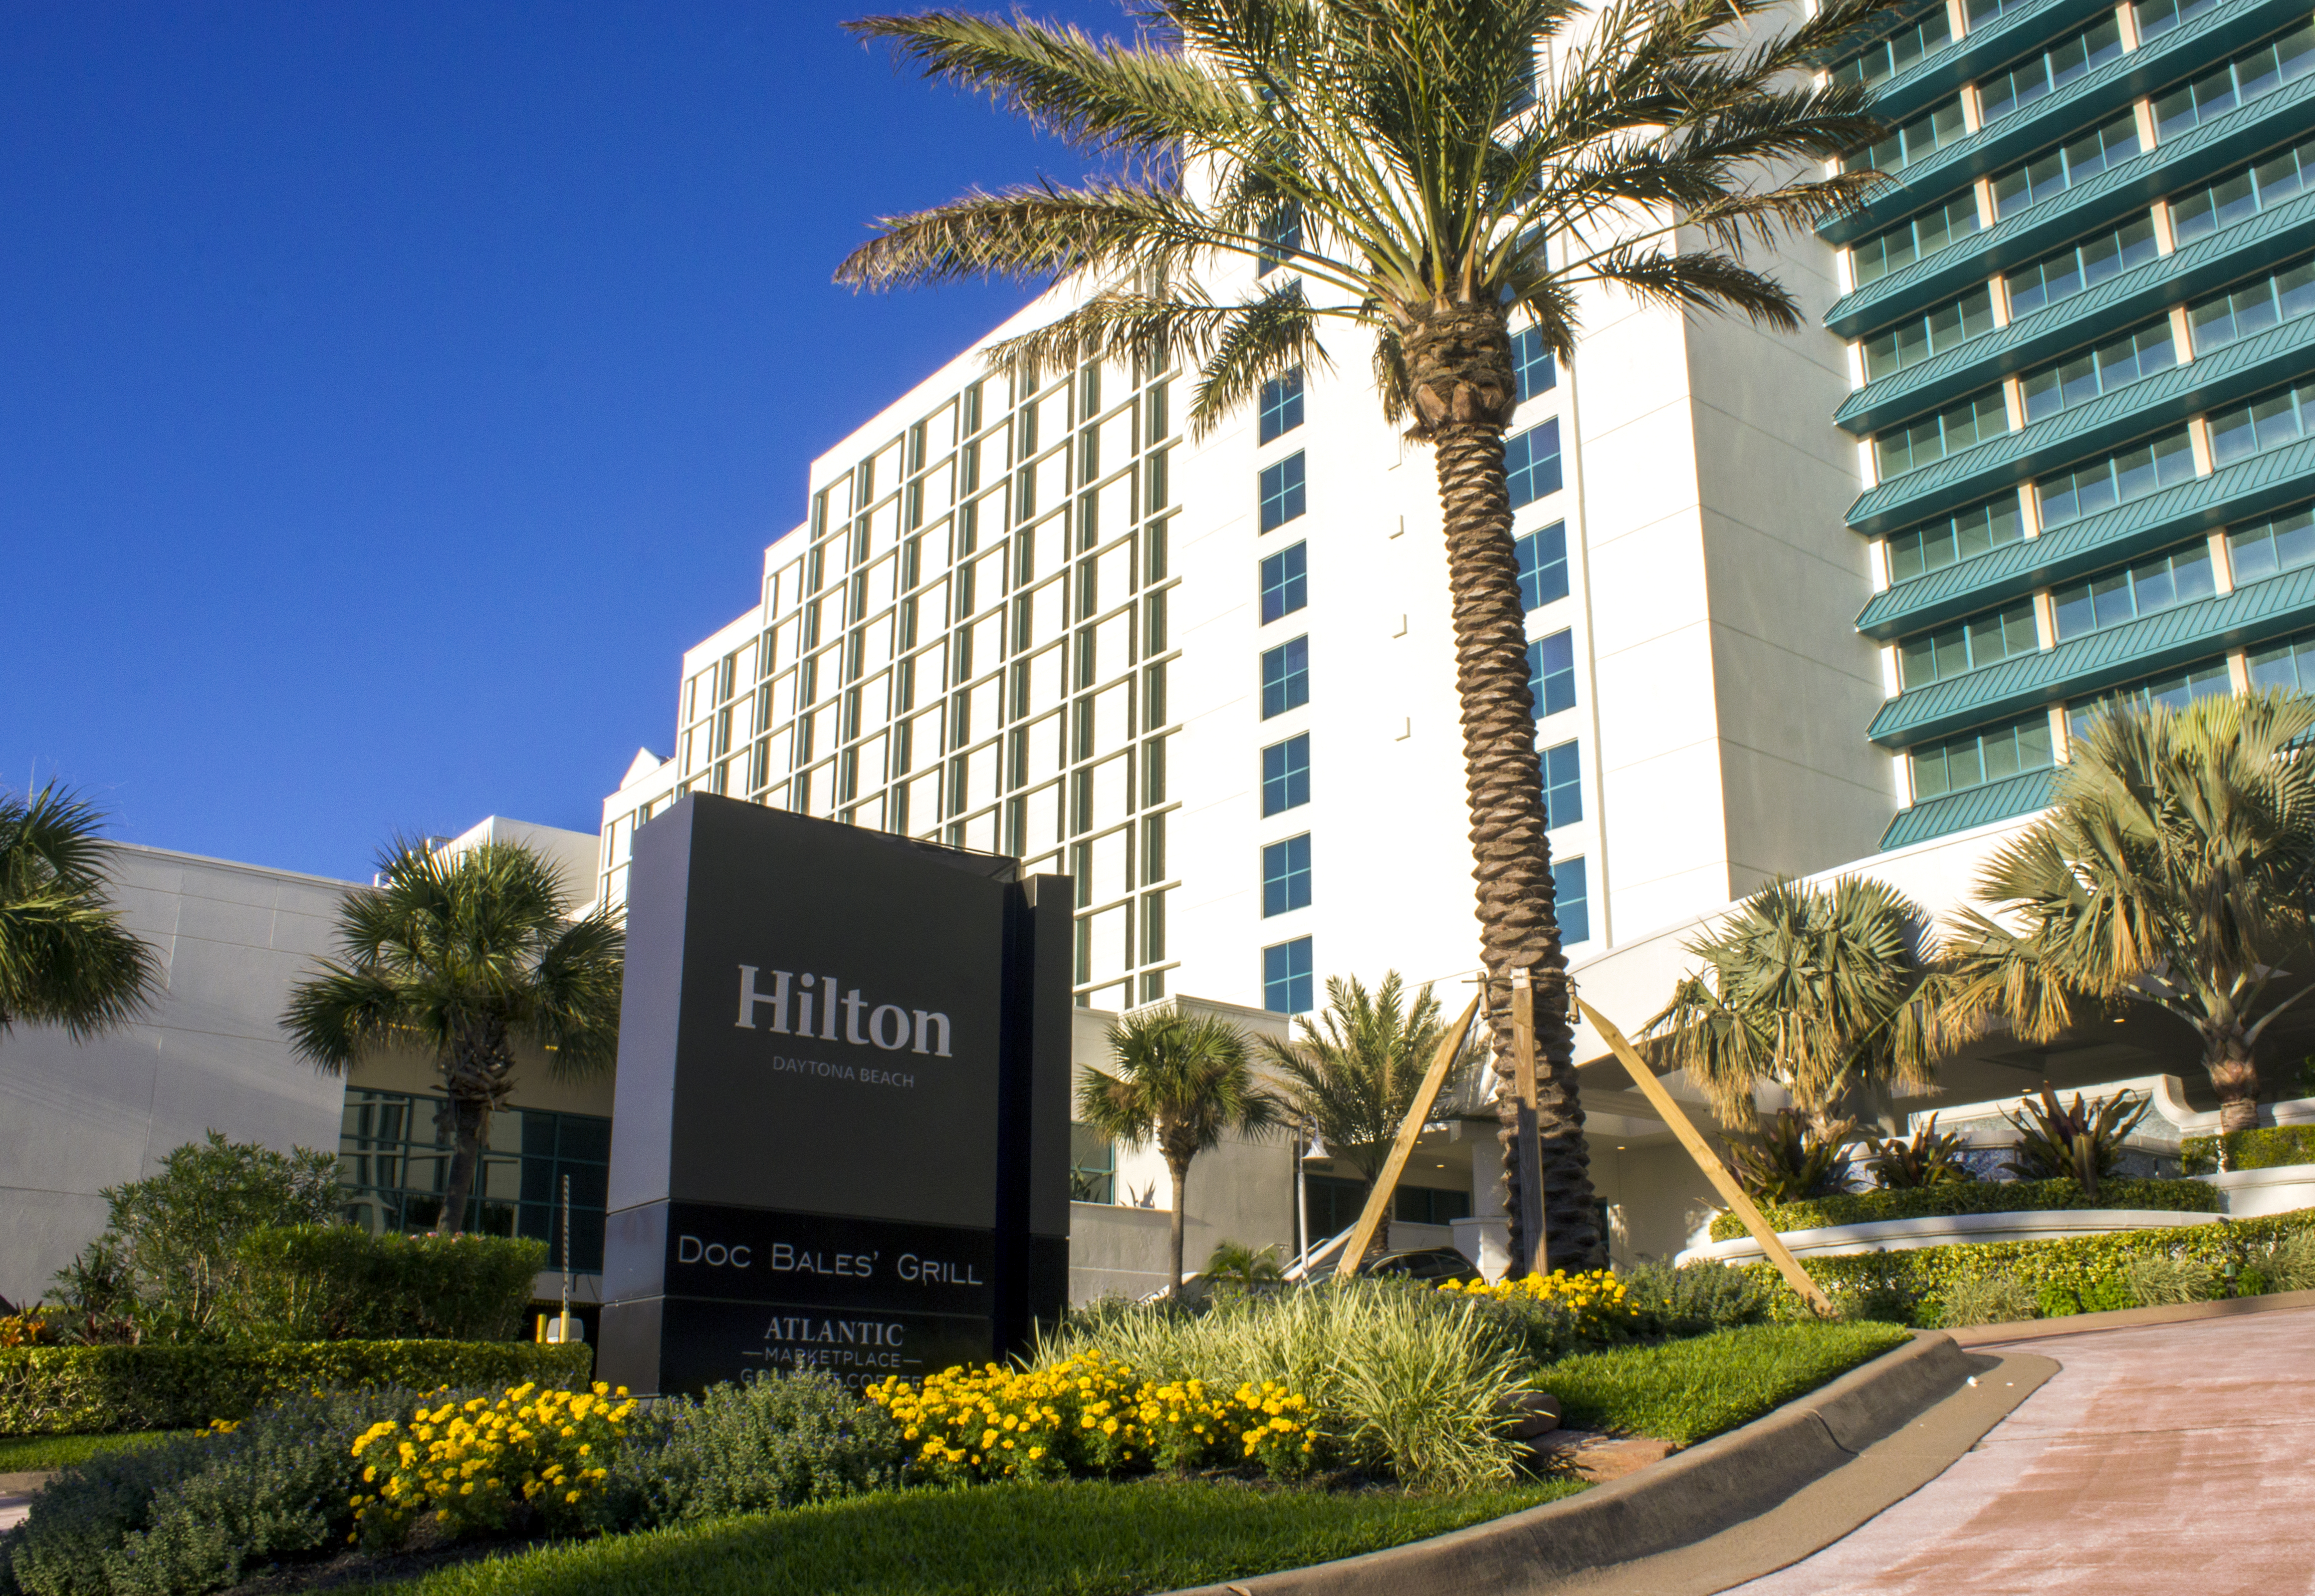 Innovations Design Group Is Proud To Have Provided Landscape Architecture Services For The 25 Million Dollar Renovations Hilton Daytona Beach